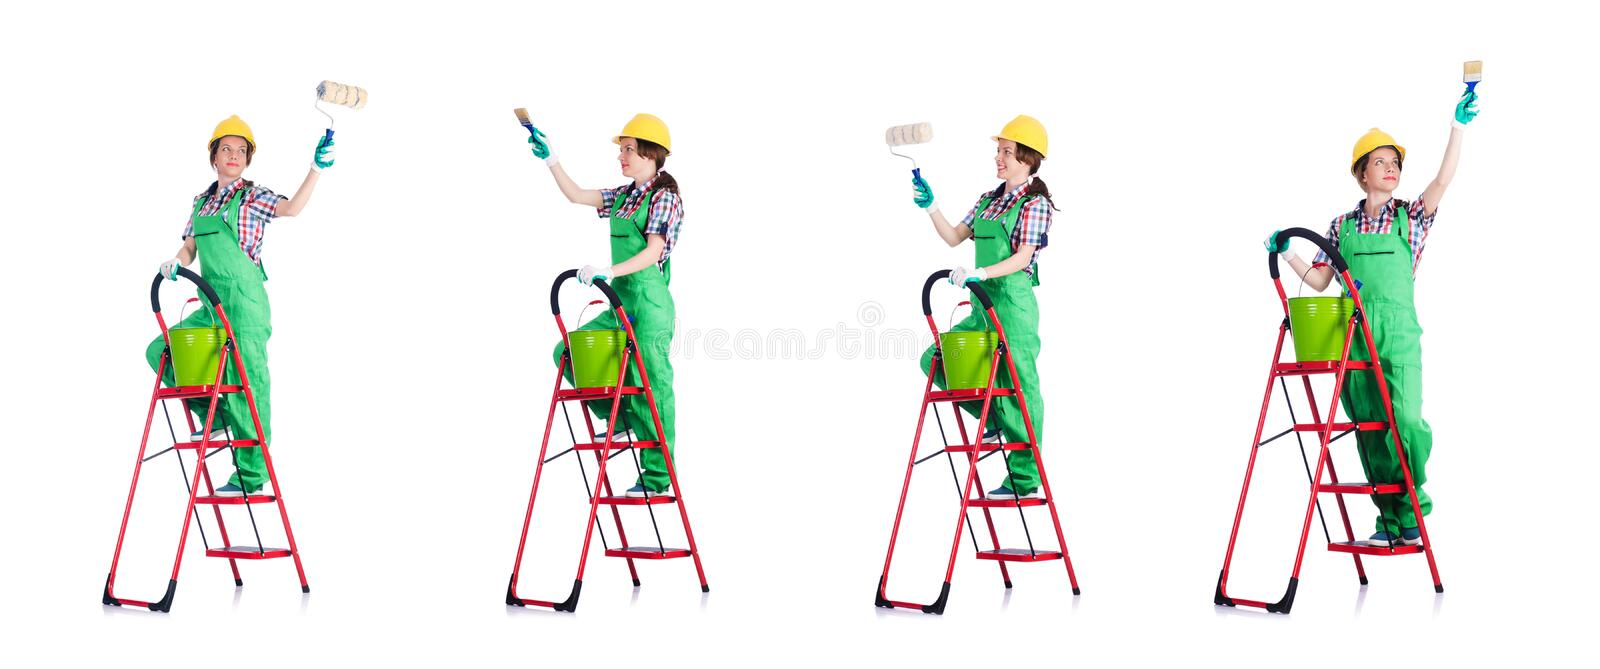 Woman repair worker with ladder stock photo